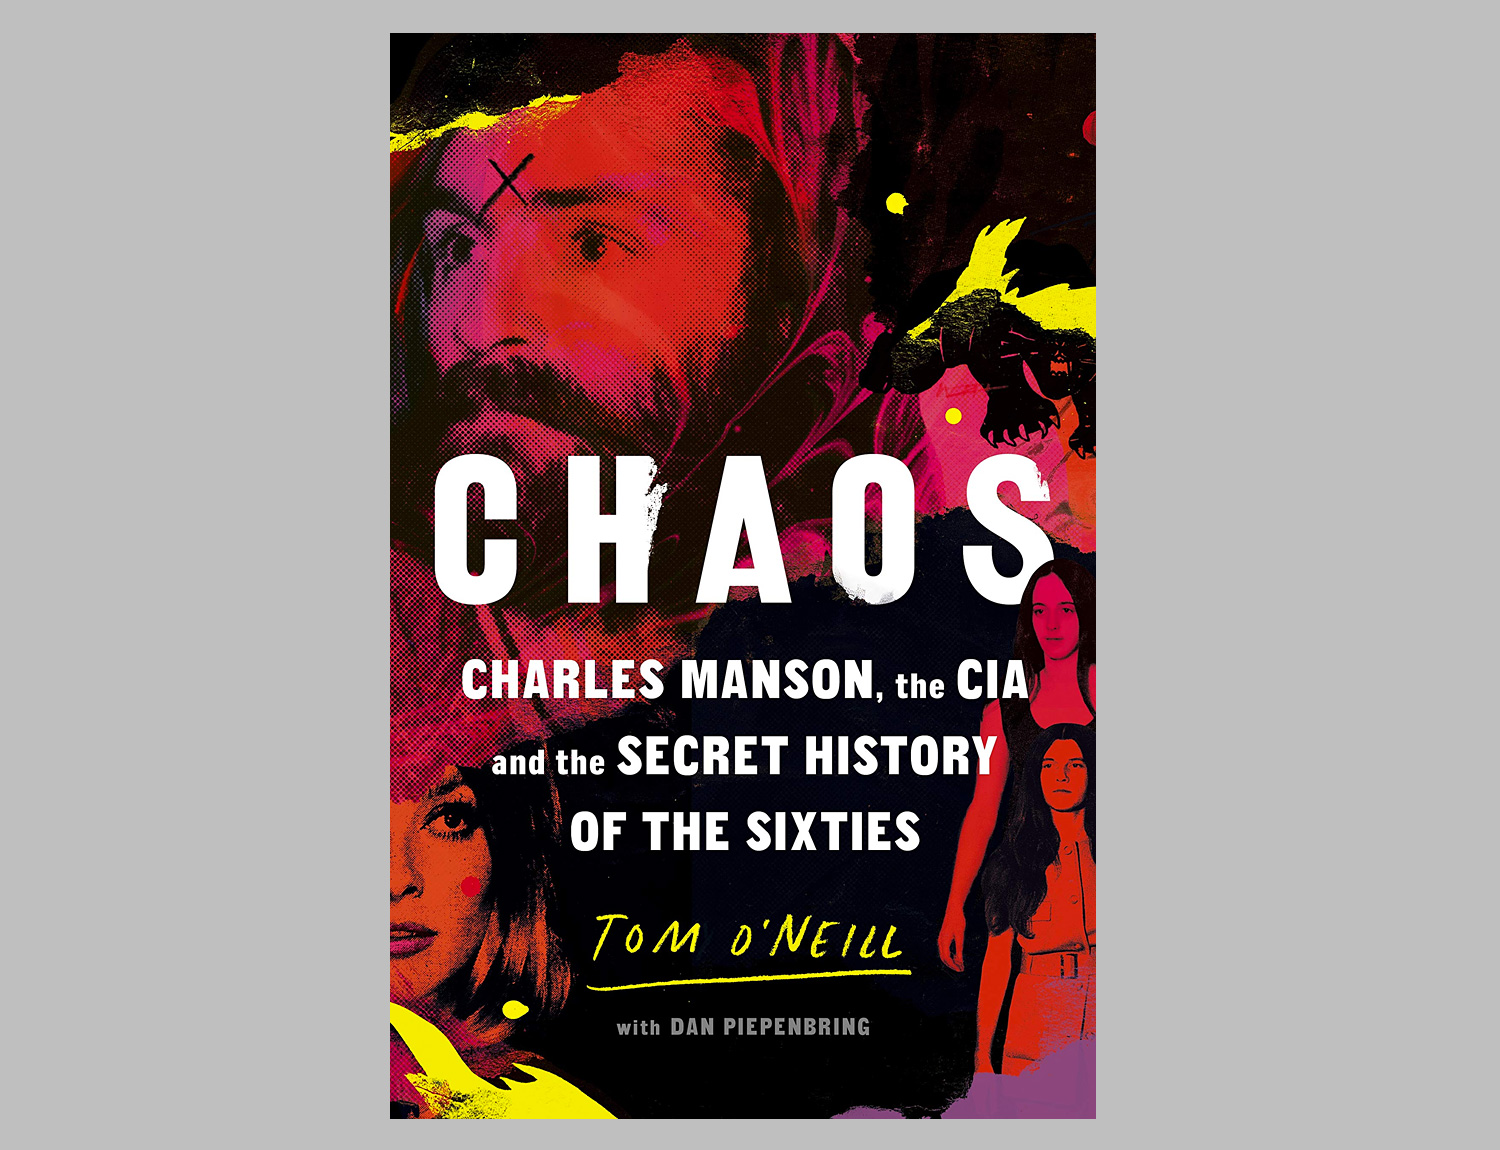 Chaos: Charles Manson, the CIA, and the Secret History of the Sixties at werd.com